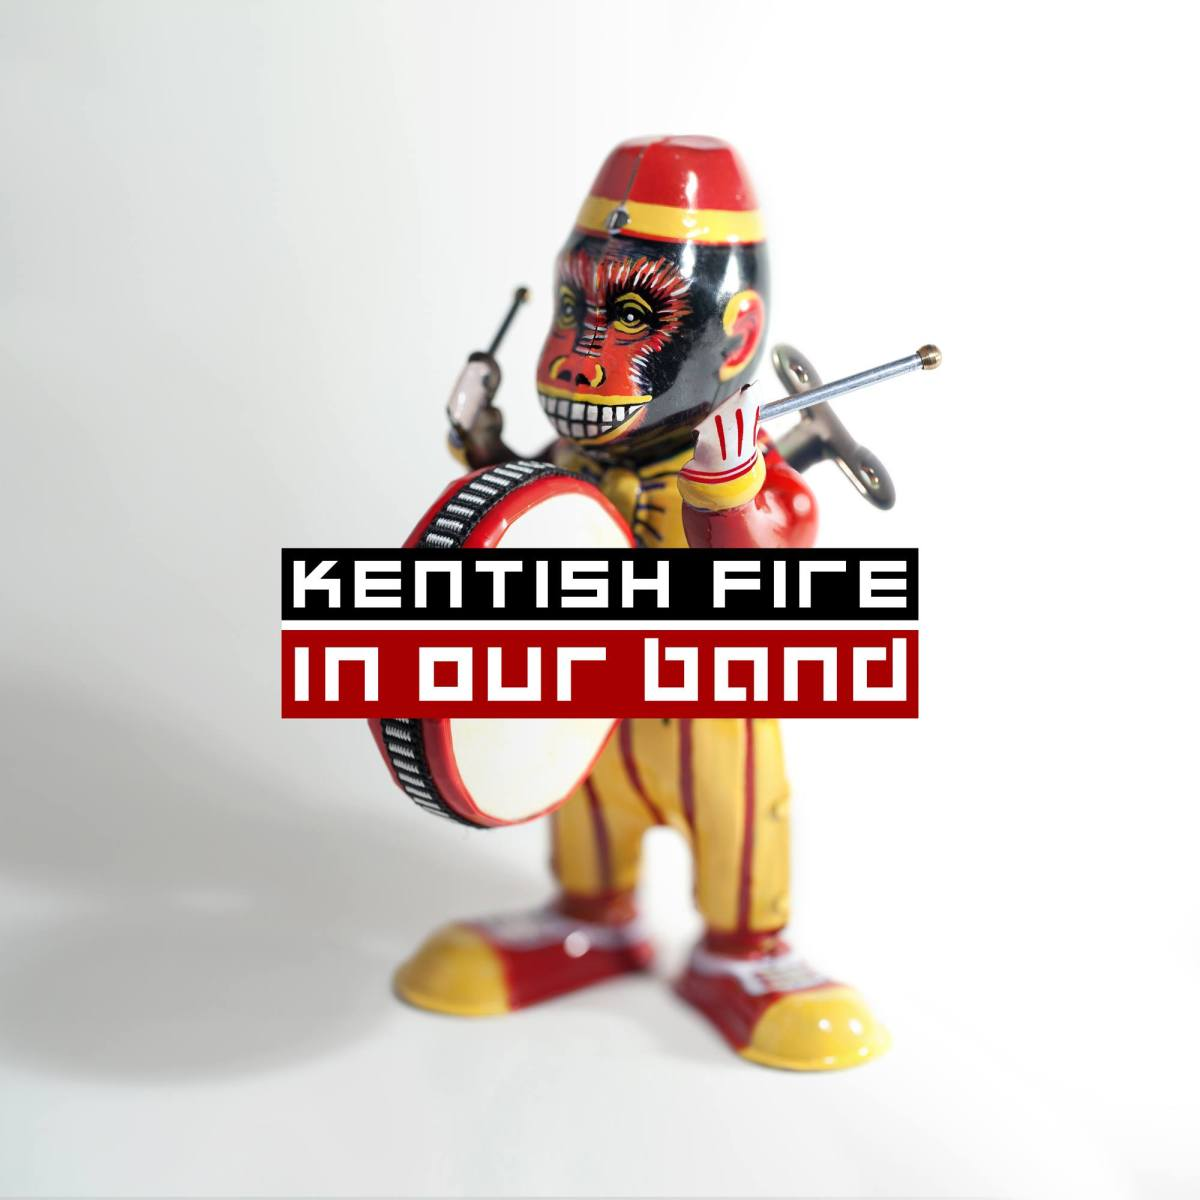 Track Of The Day #629: Kentish Fire - In Our Band